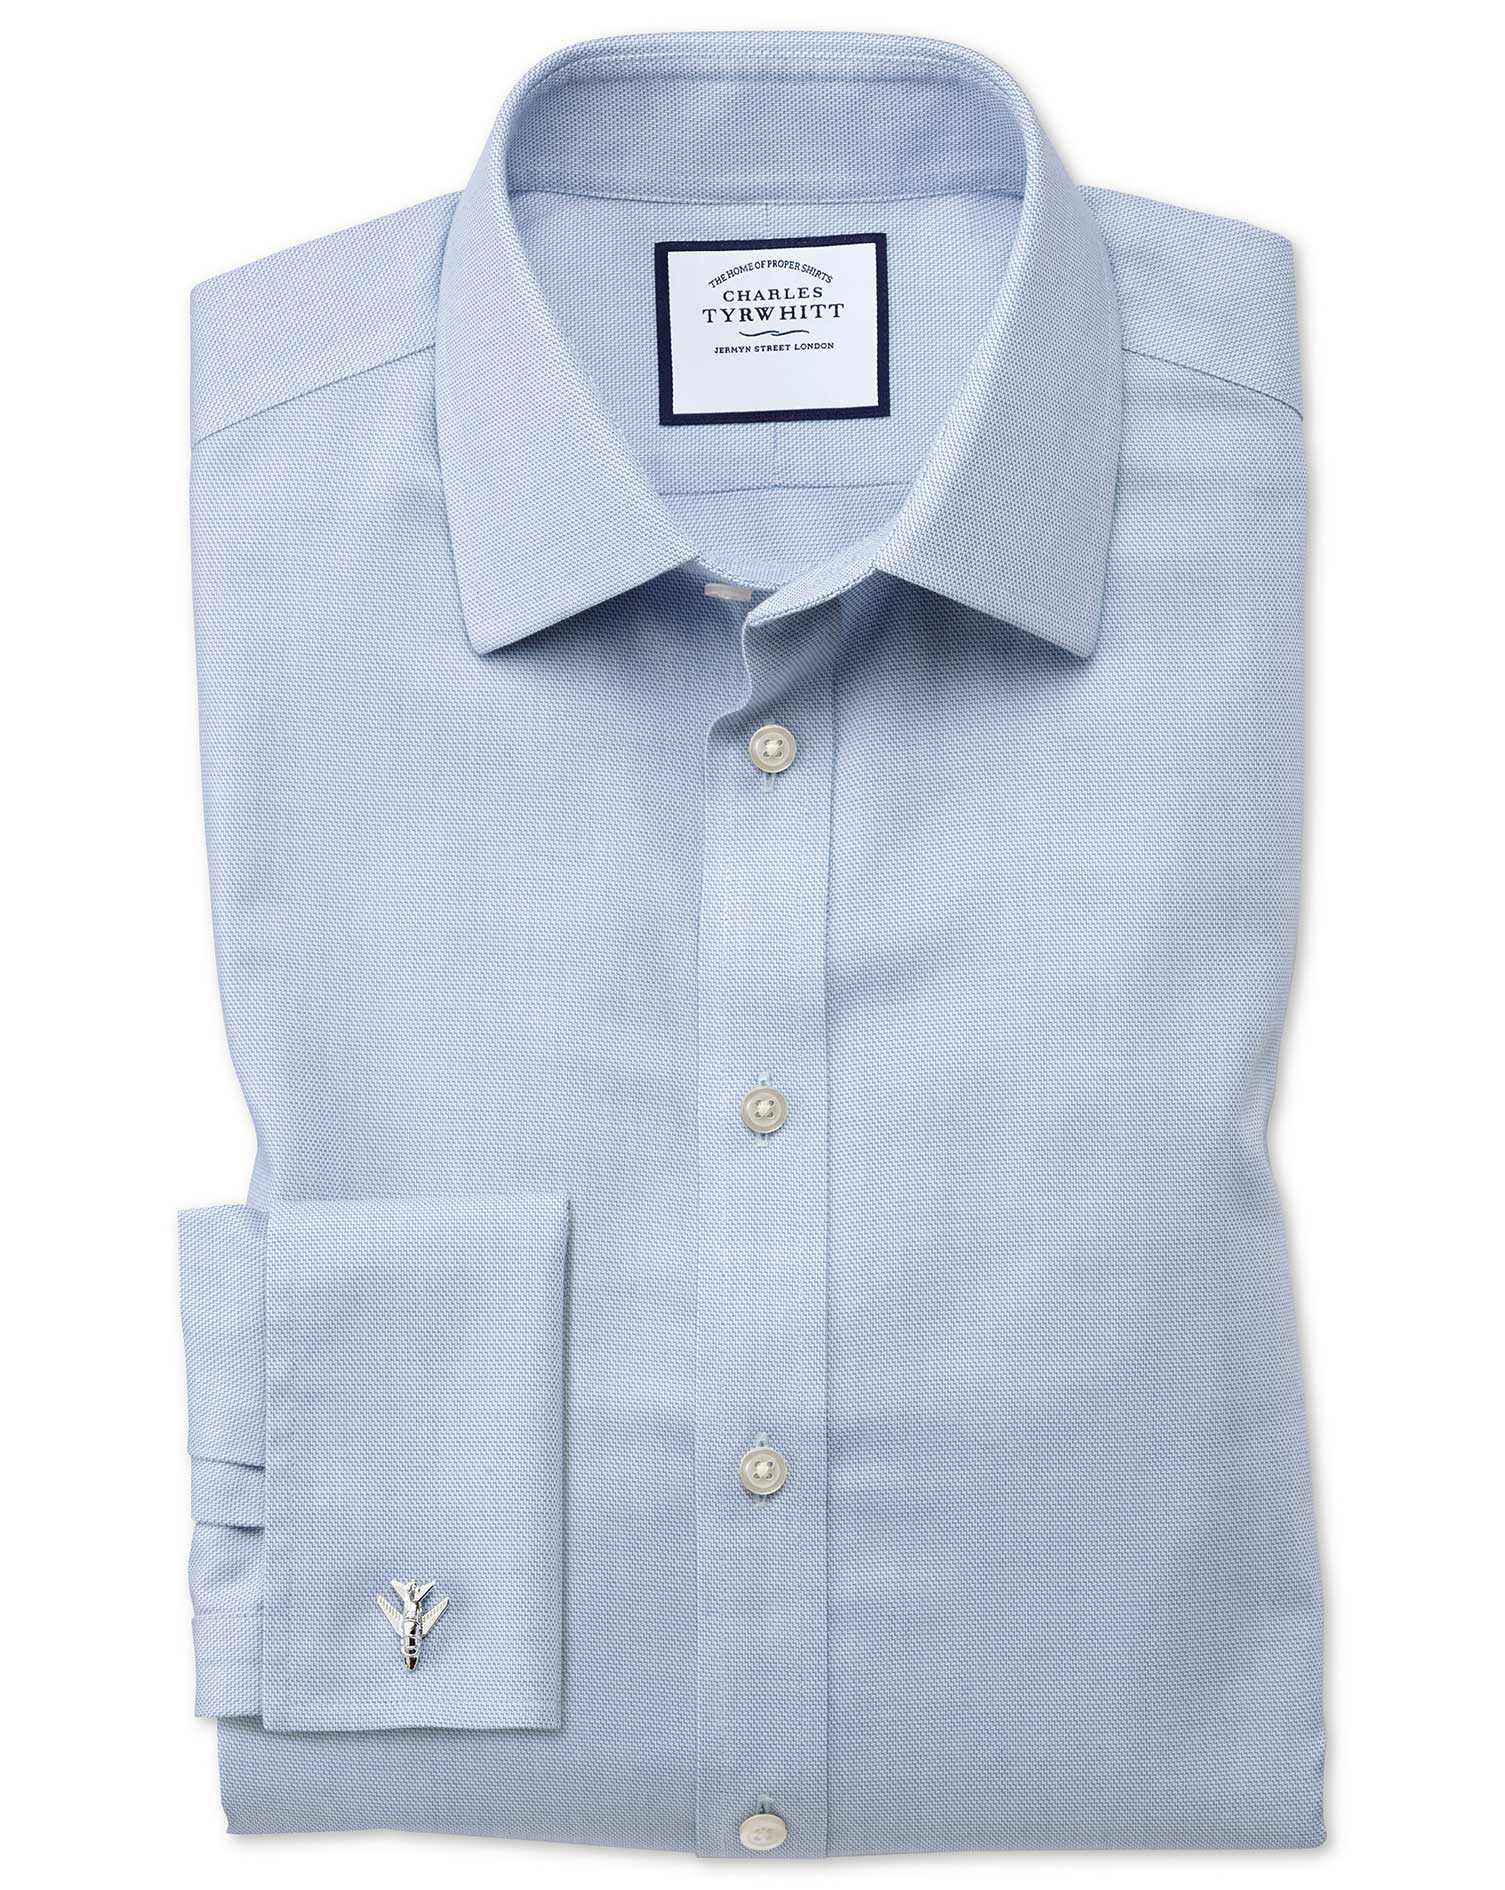 Classic Fit Non-Iron Step Weave Mid Blue Cotton Formal Shirt Double Cuff Size 19/38 by Charles Tyrwh